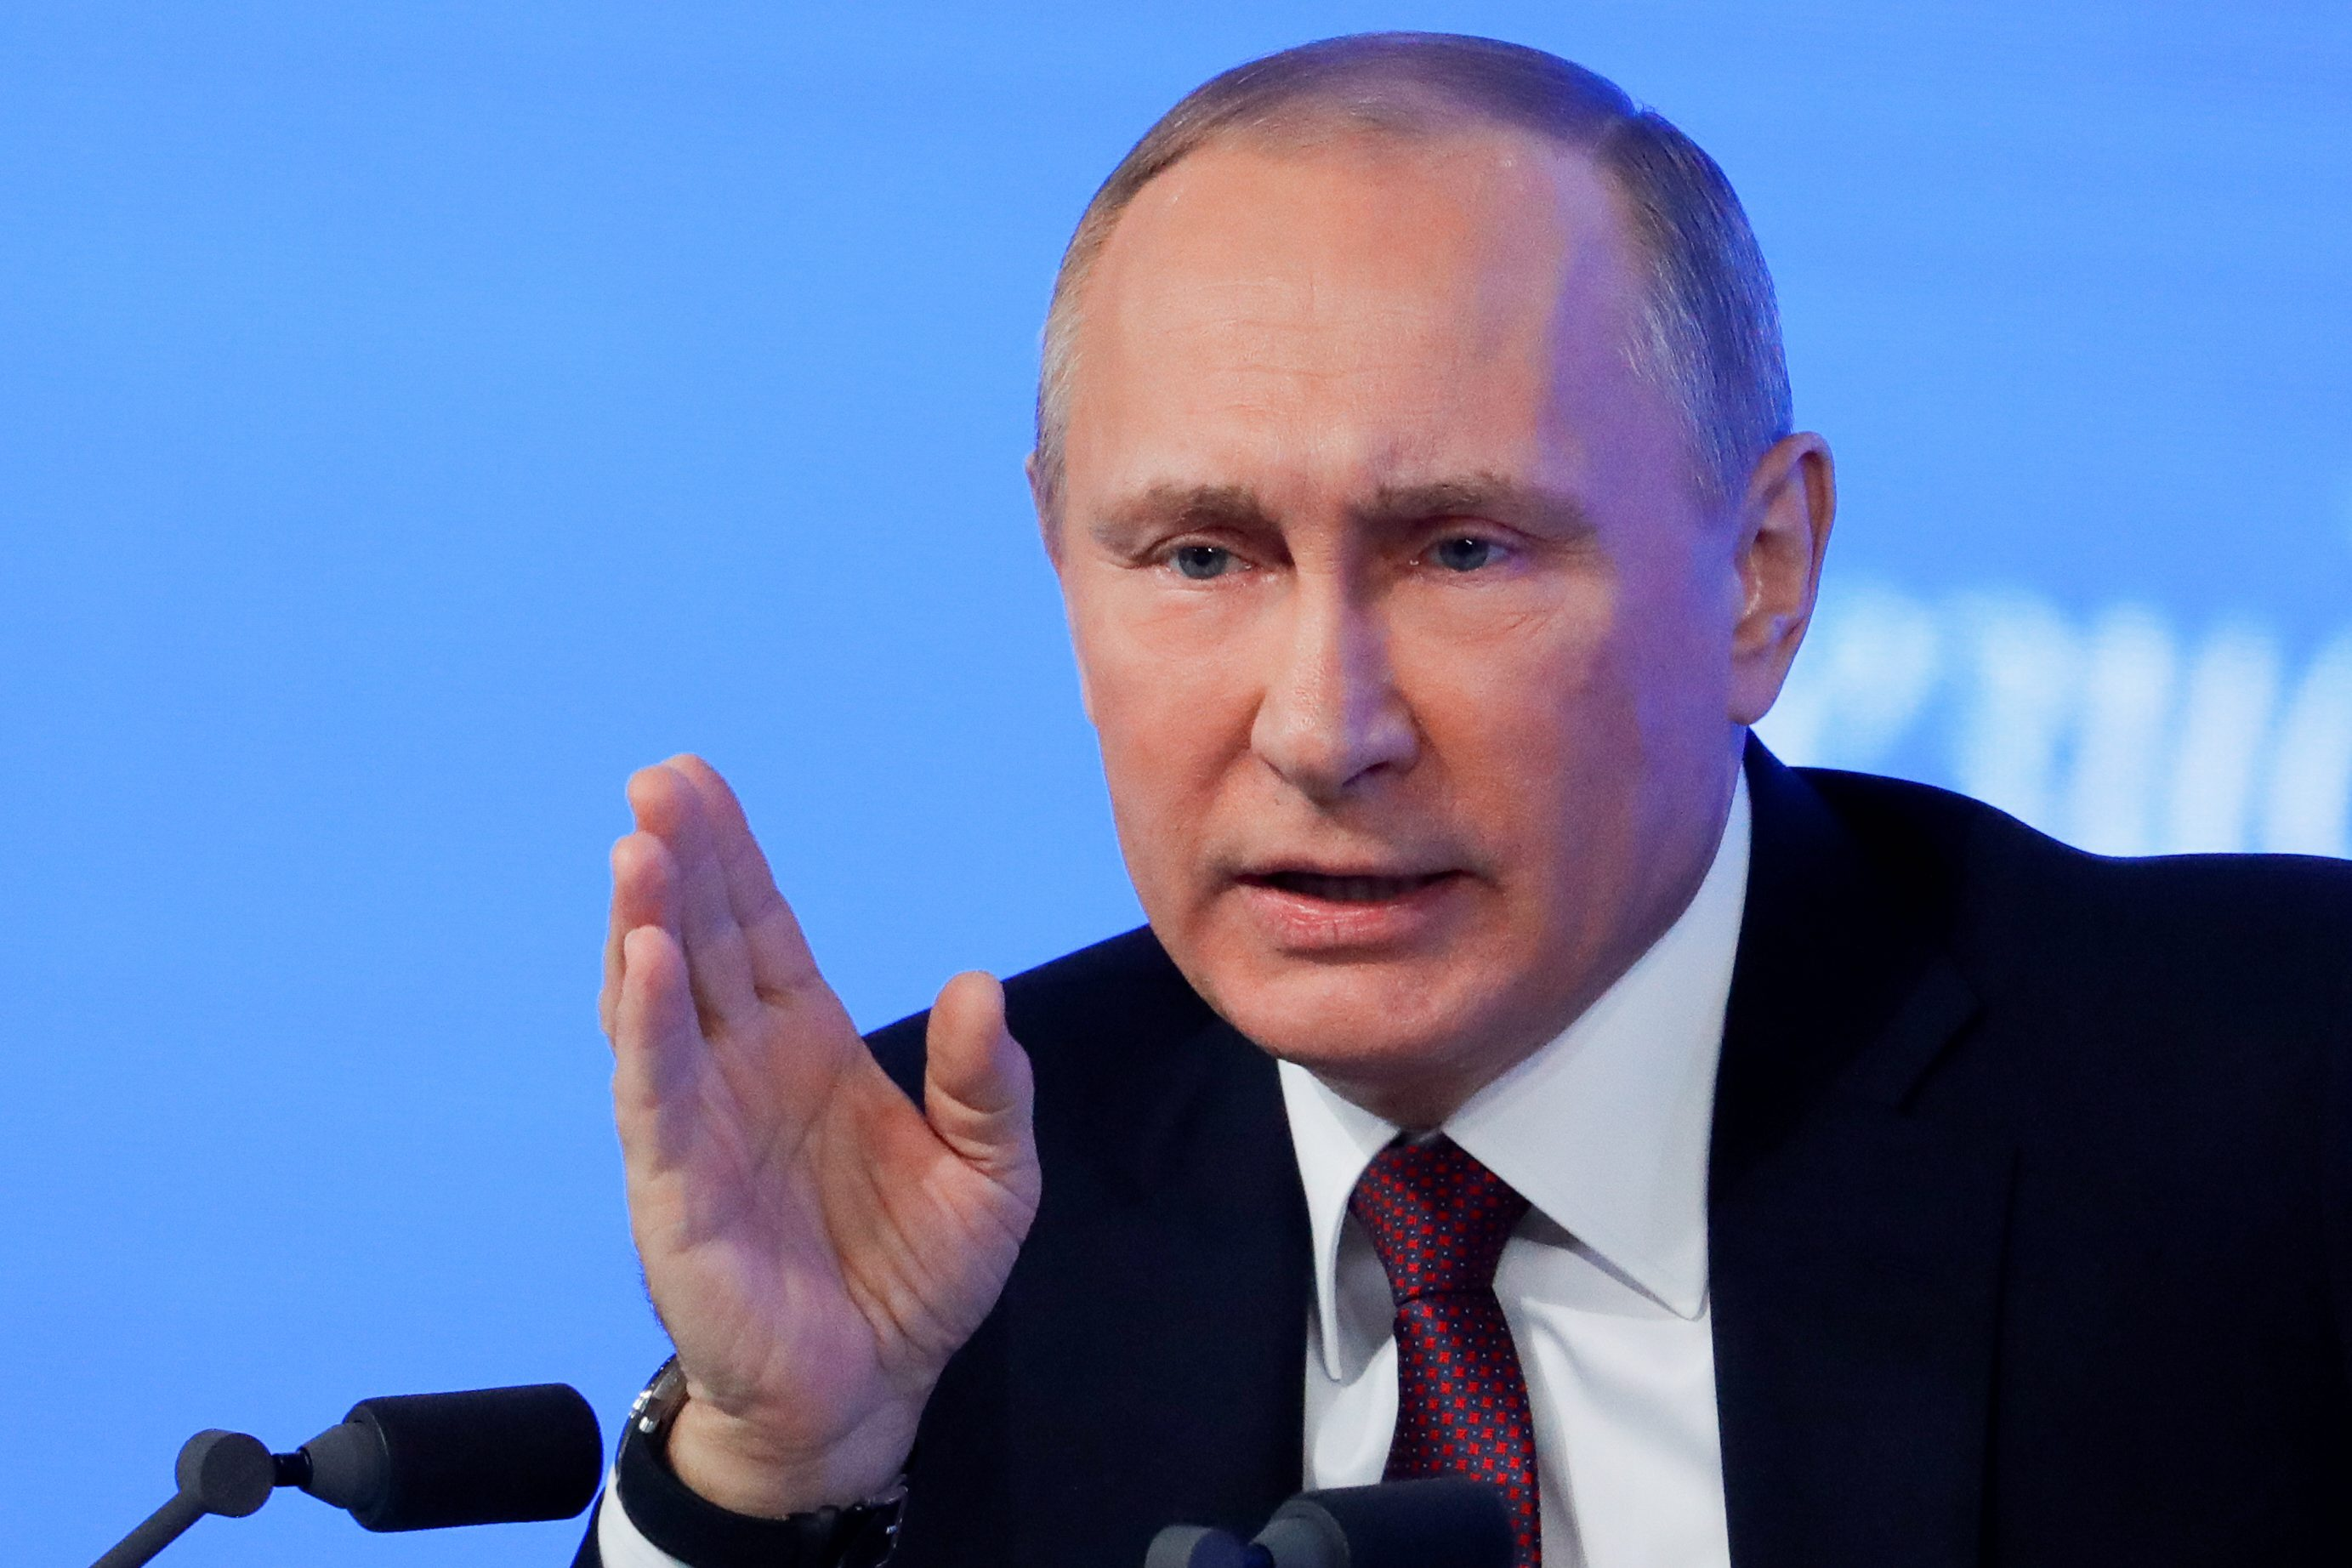 Putin: Idlib 'Chemical Attack' Was False Flag, More Provocations Are Being Prepared